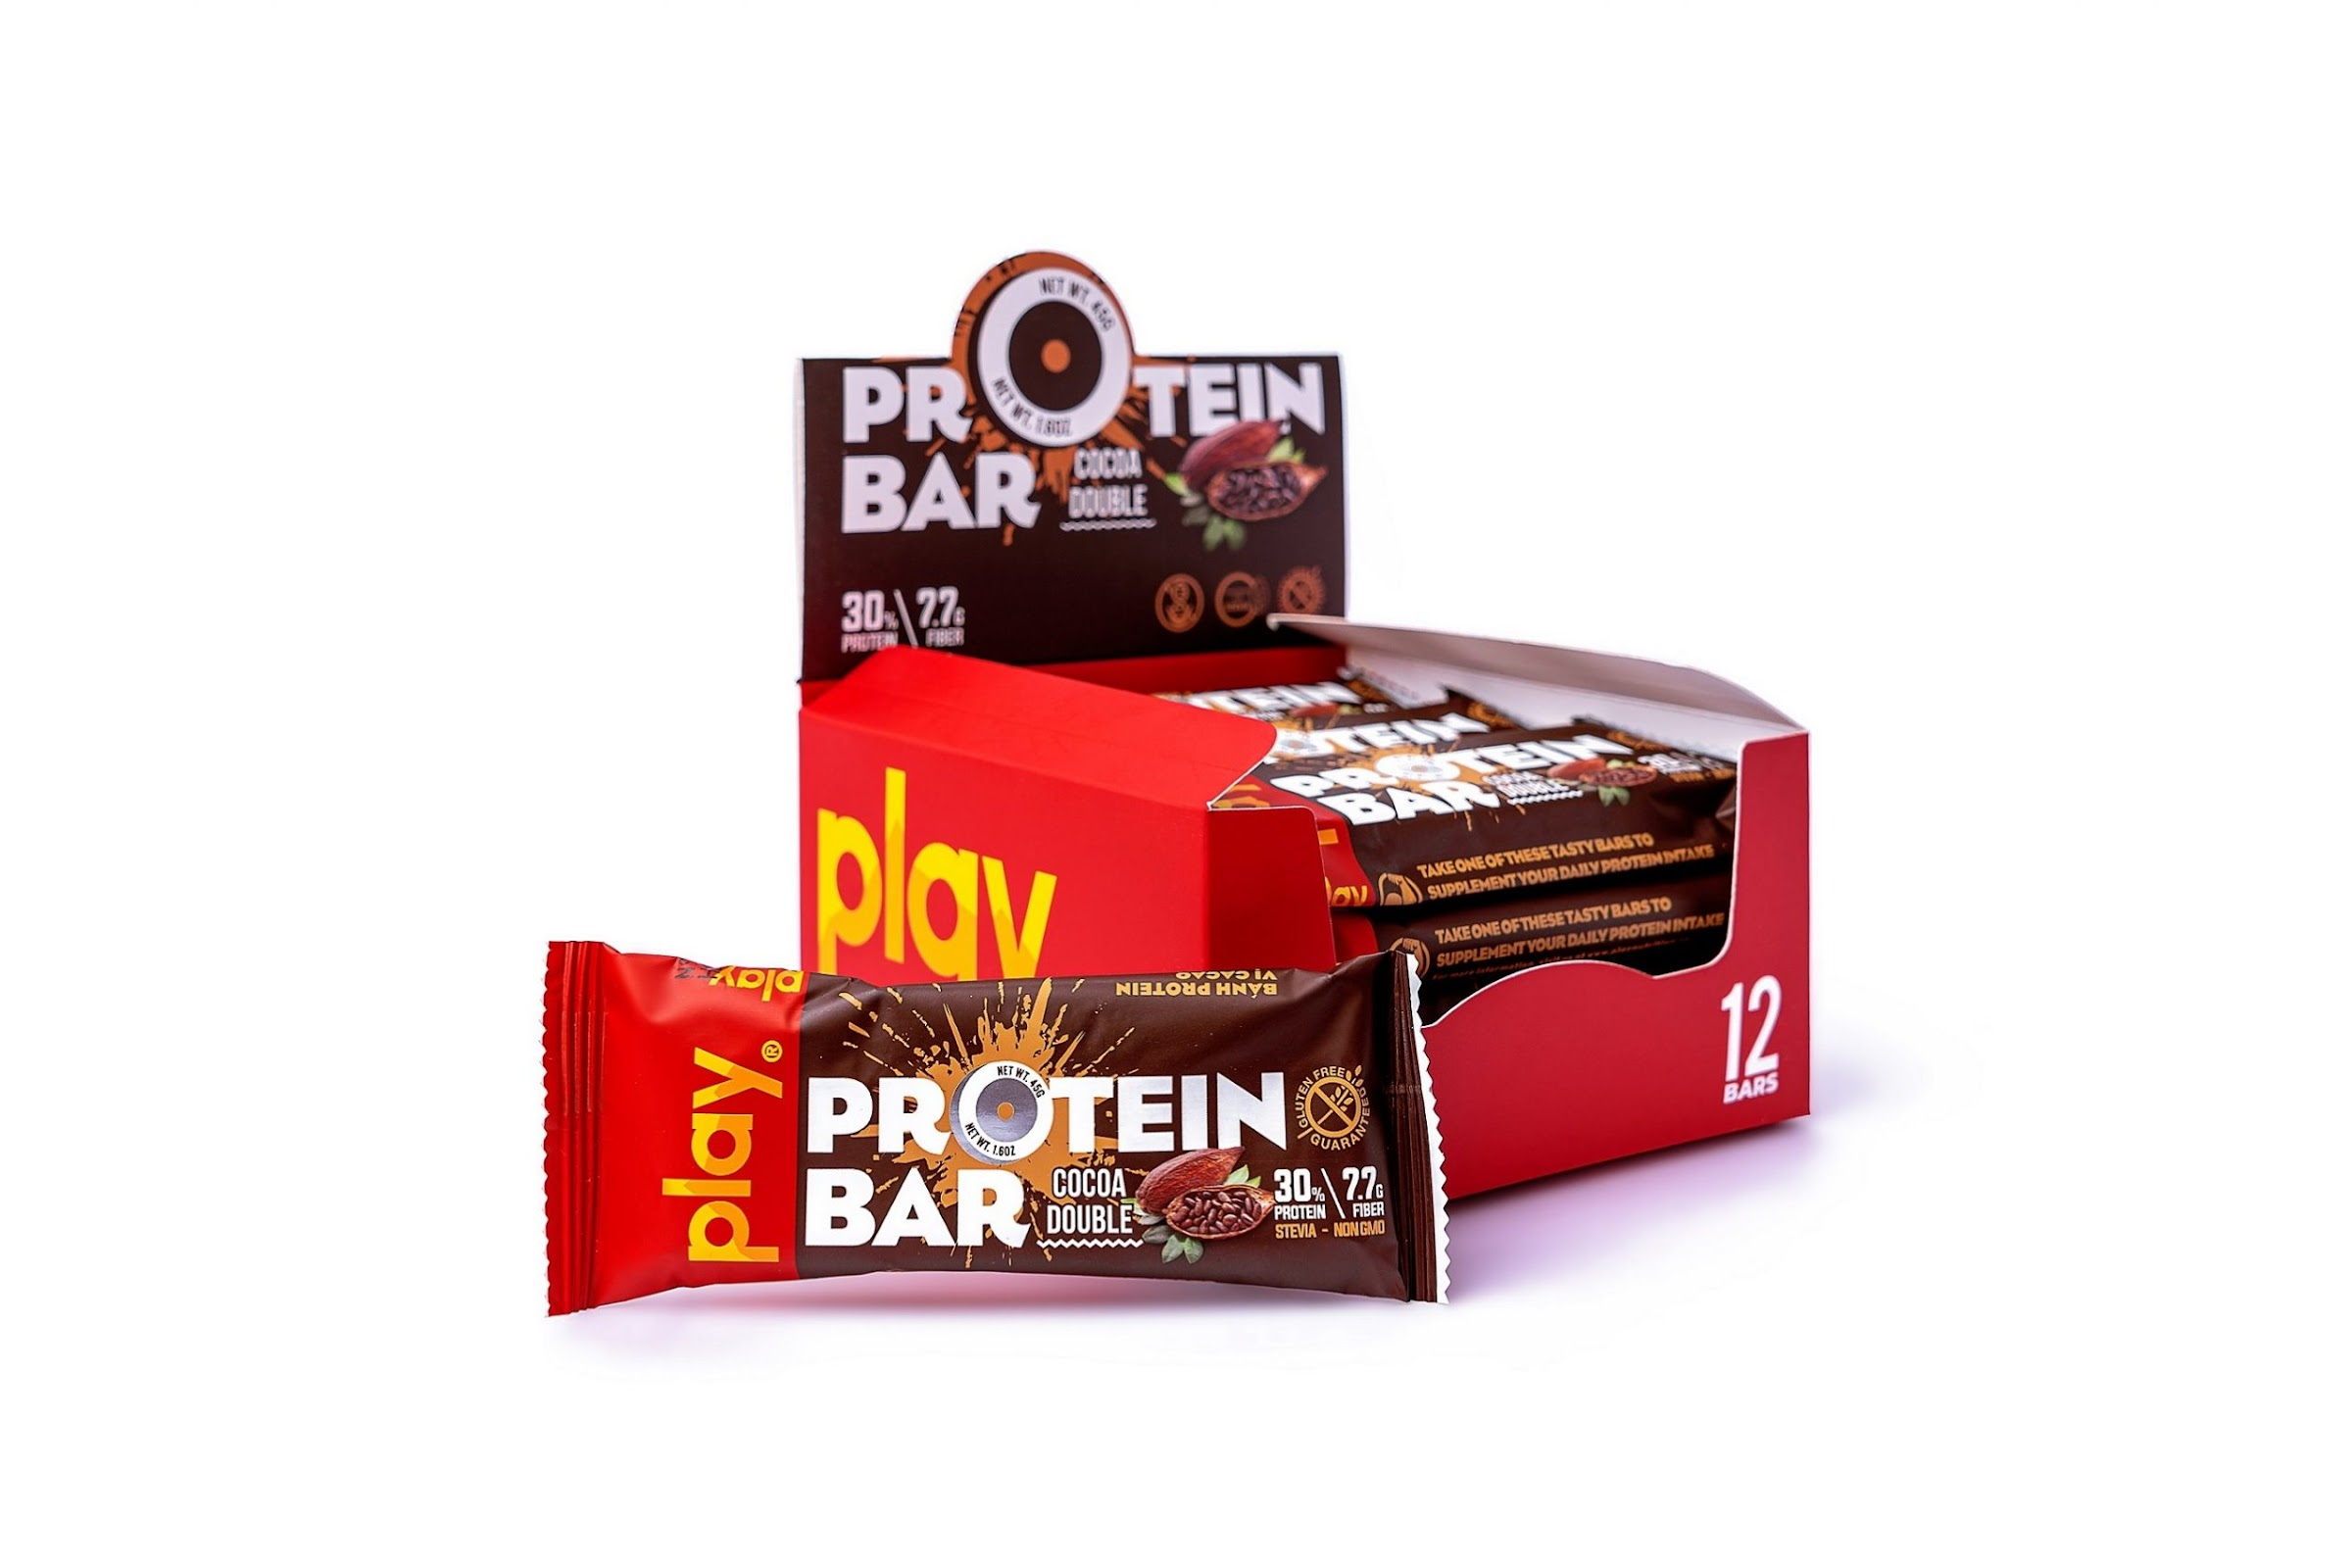 Gymers should start consuming even more protein bars